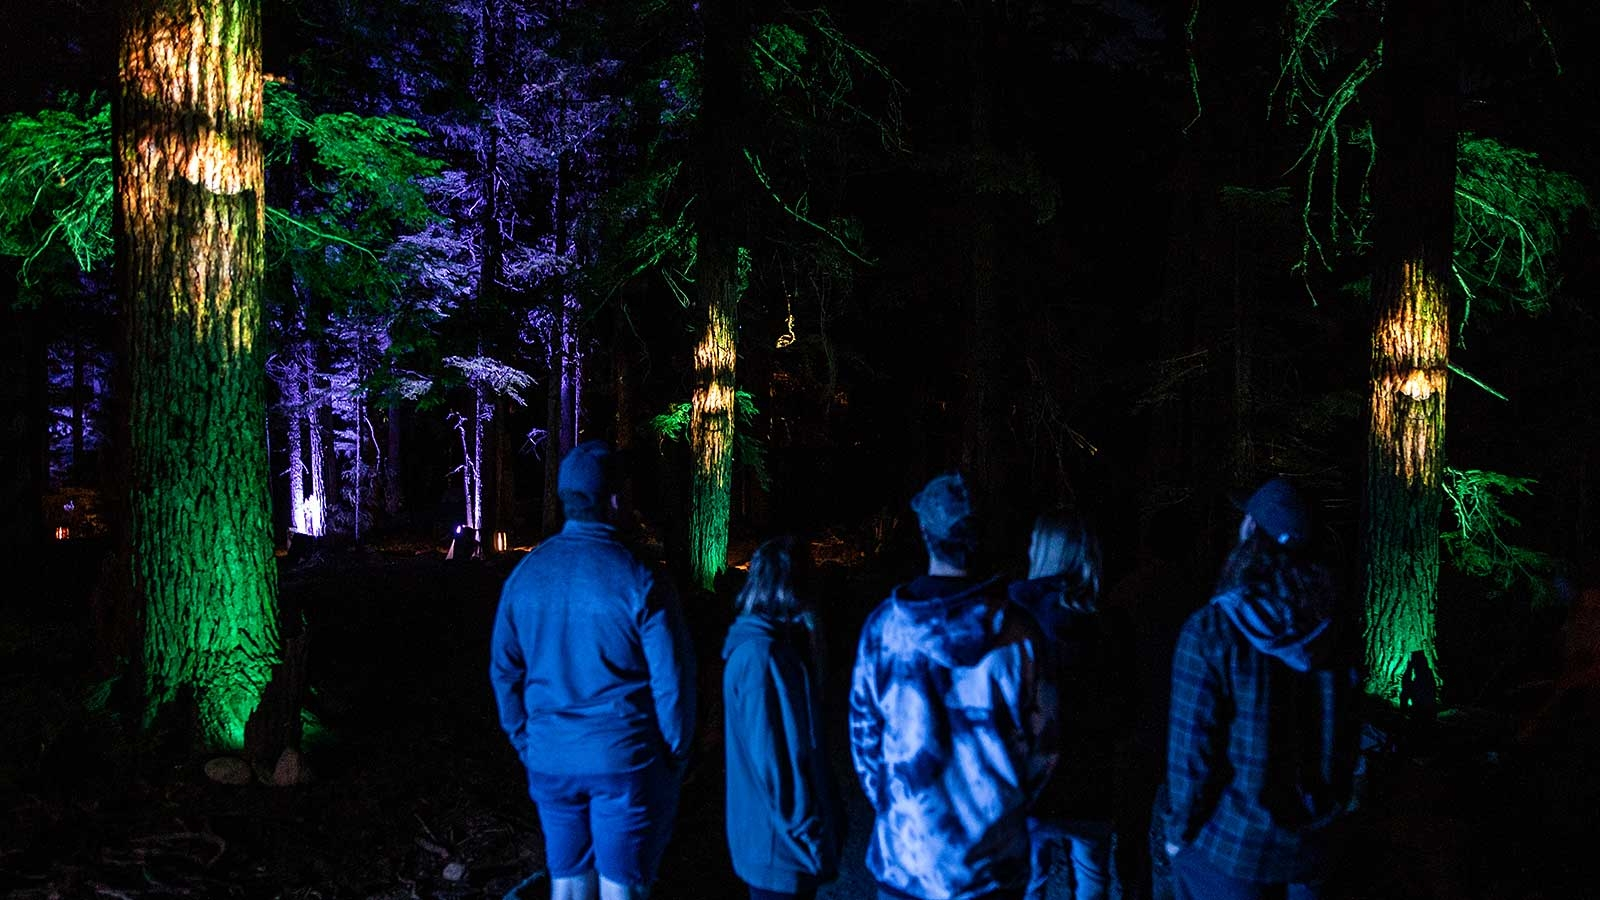 Five people standing in a dark forrest with green and purple illumination